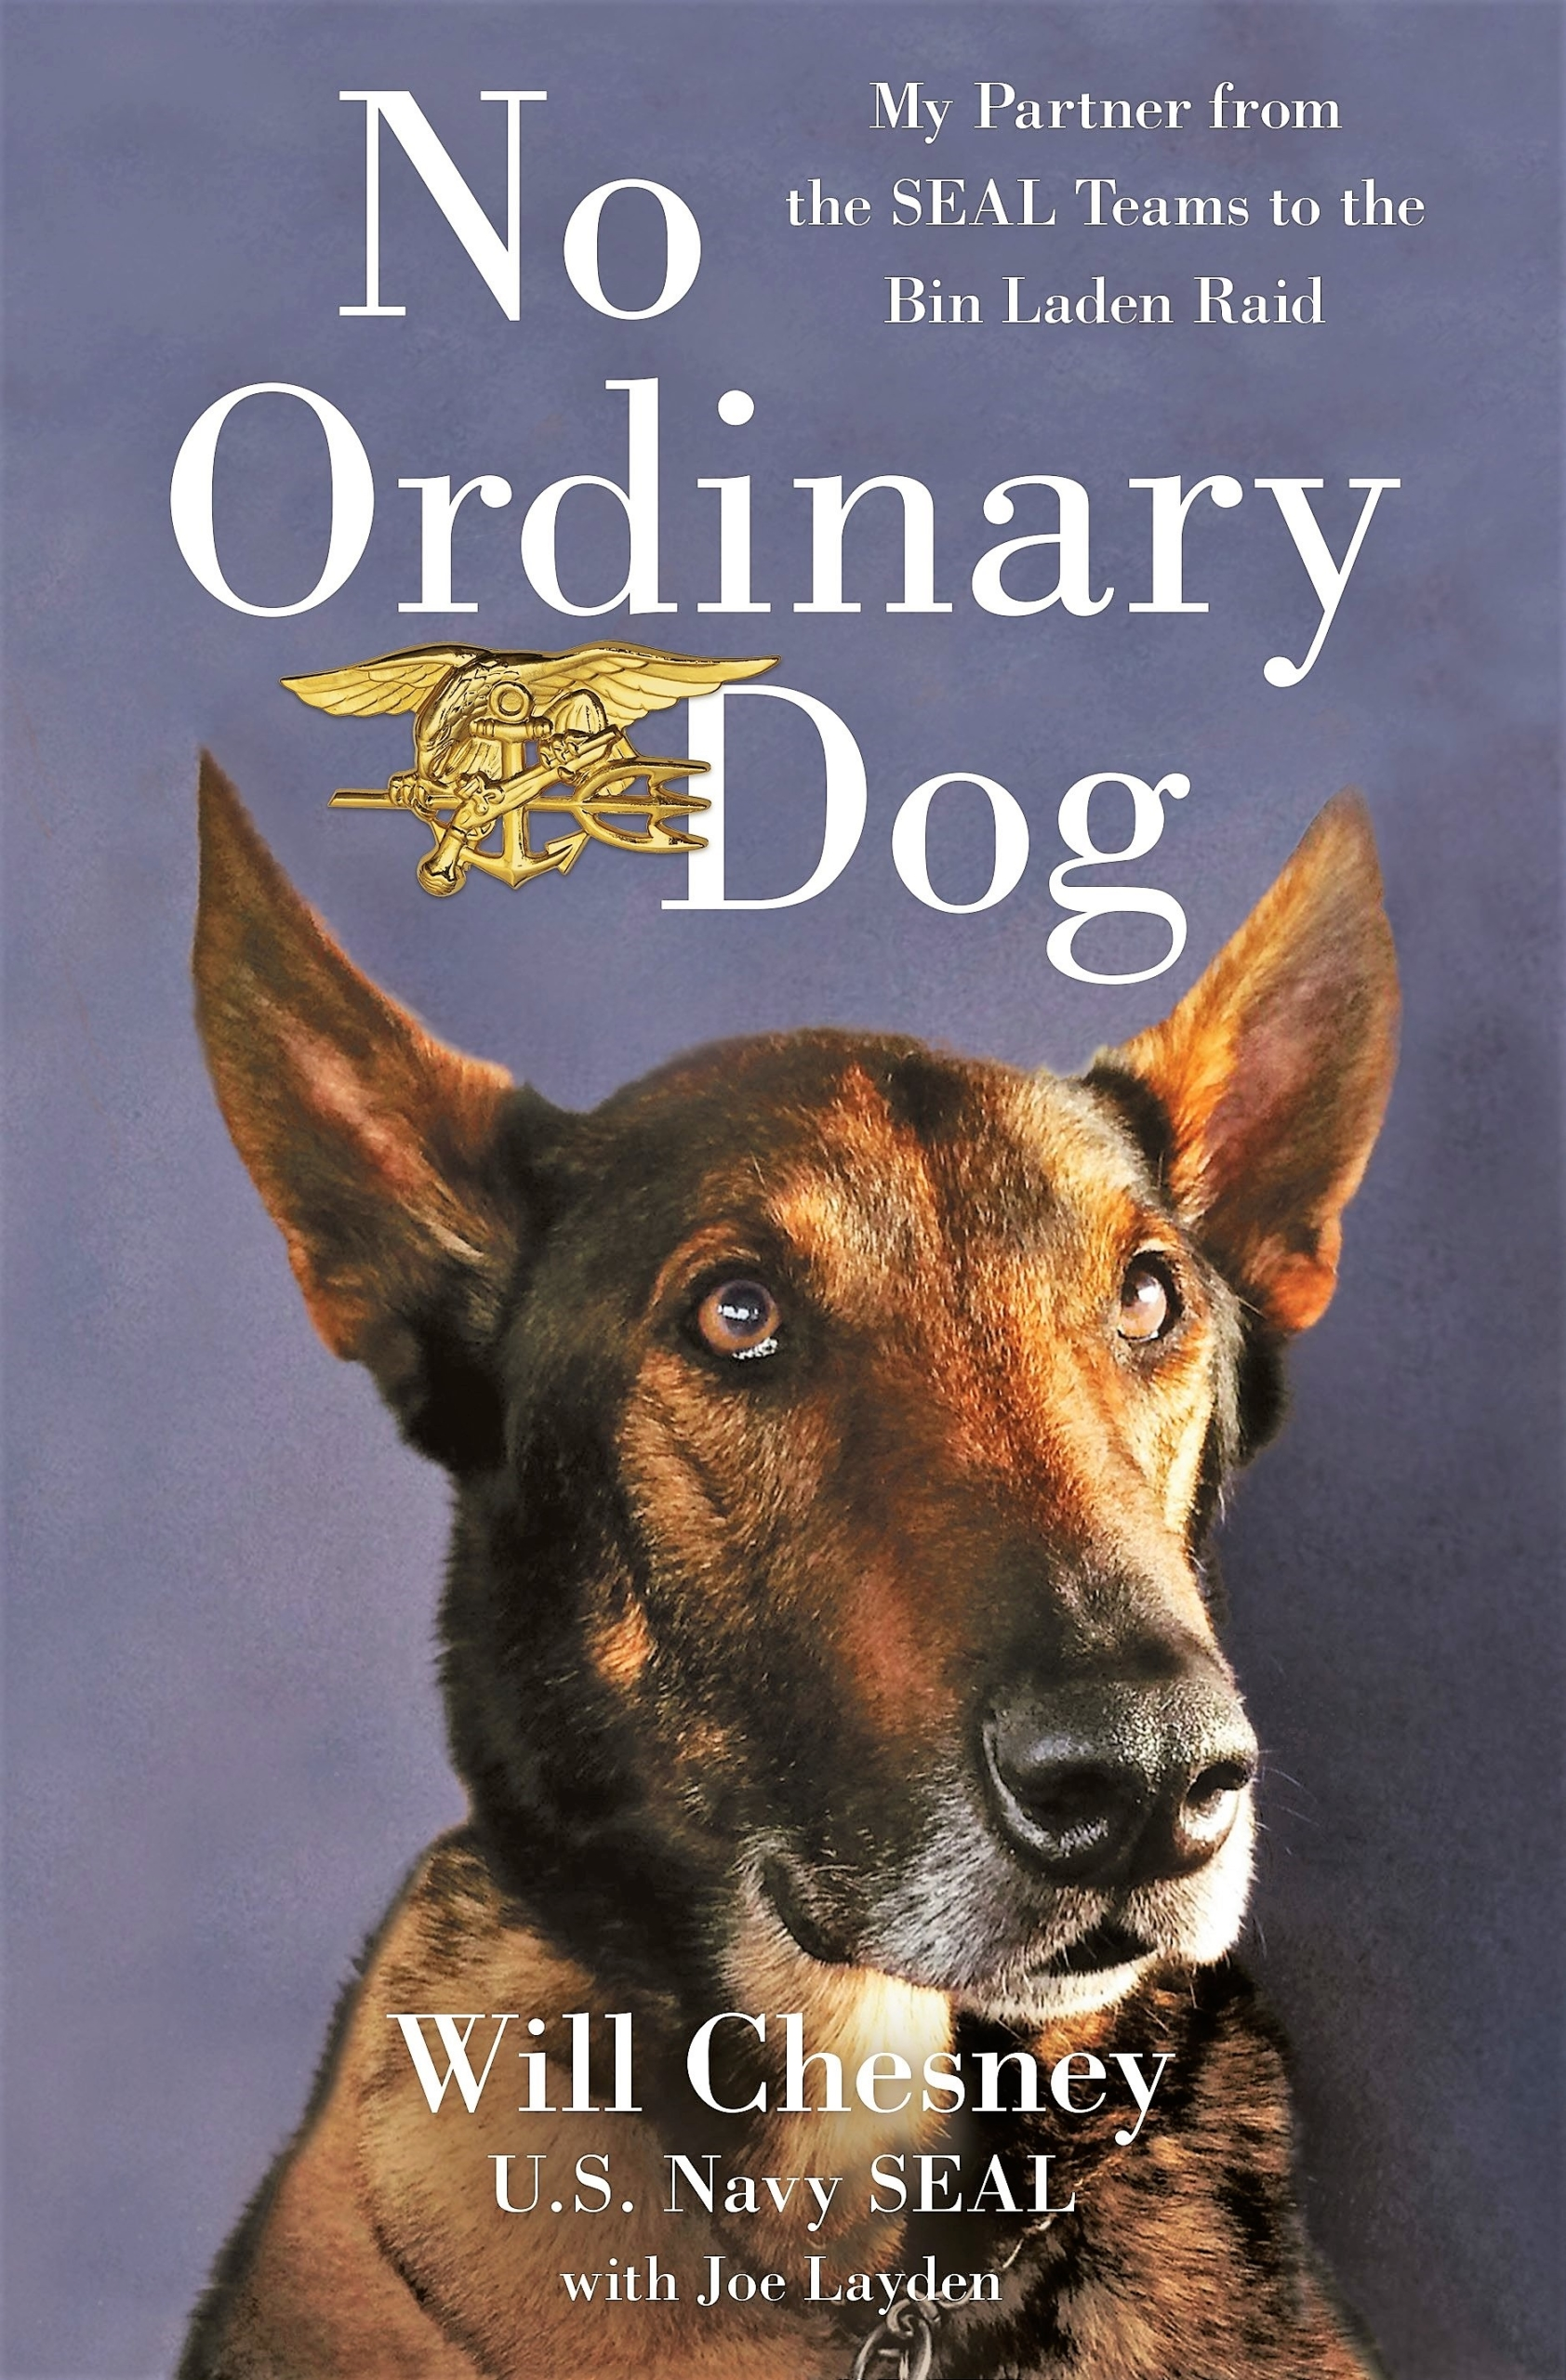 This image shows the cover of No Ordinary Dog by retired Navy SEAL Will Chesney and co-author Joe Layden.